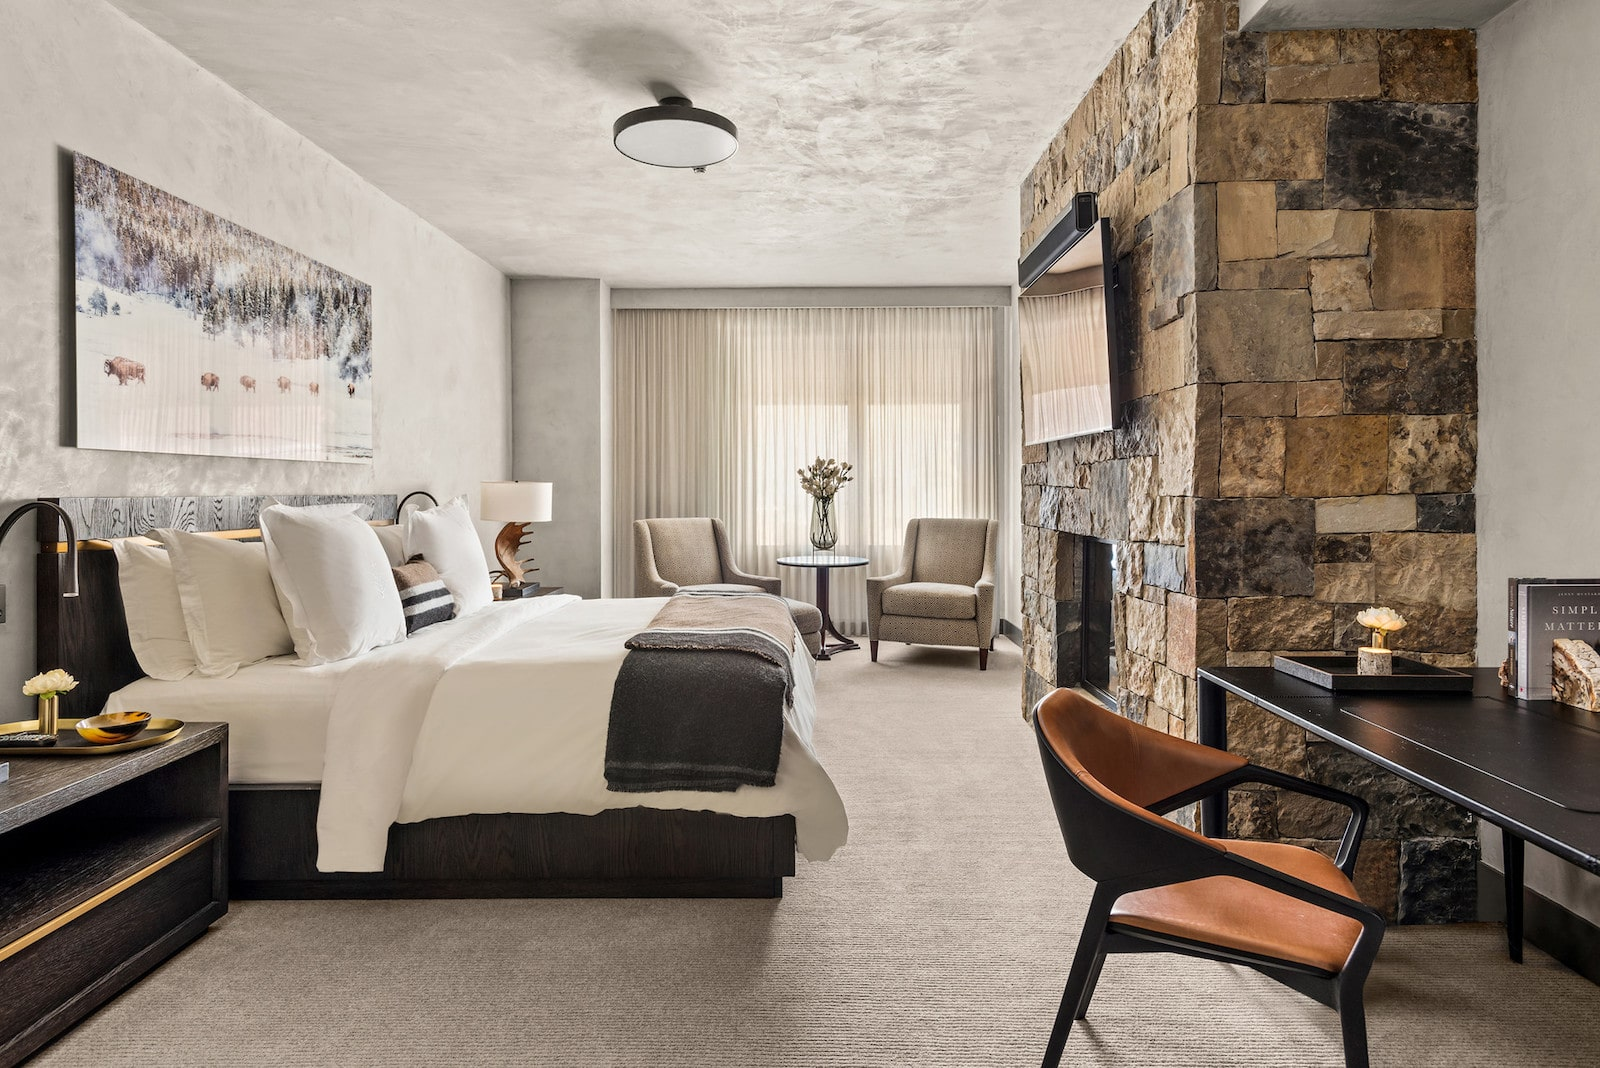 Image of a room at the Four Seasons Resort Vail in Colorado